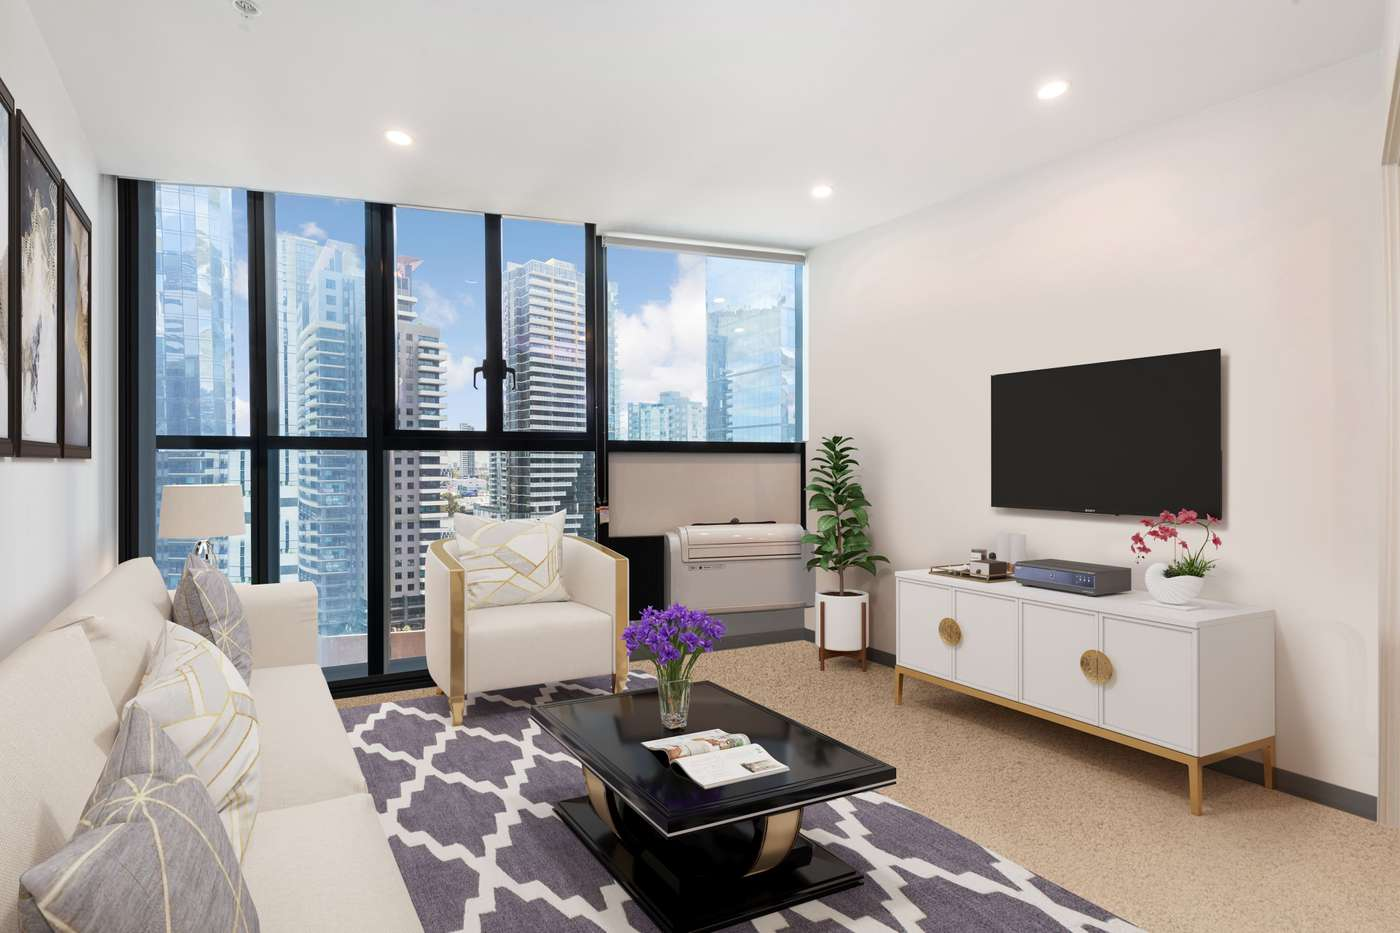 Main view of Homely apartment listing, 1304/33 Clarke Street, Southbank, VIC 3006